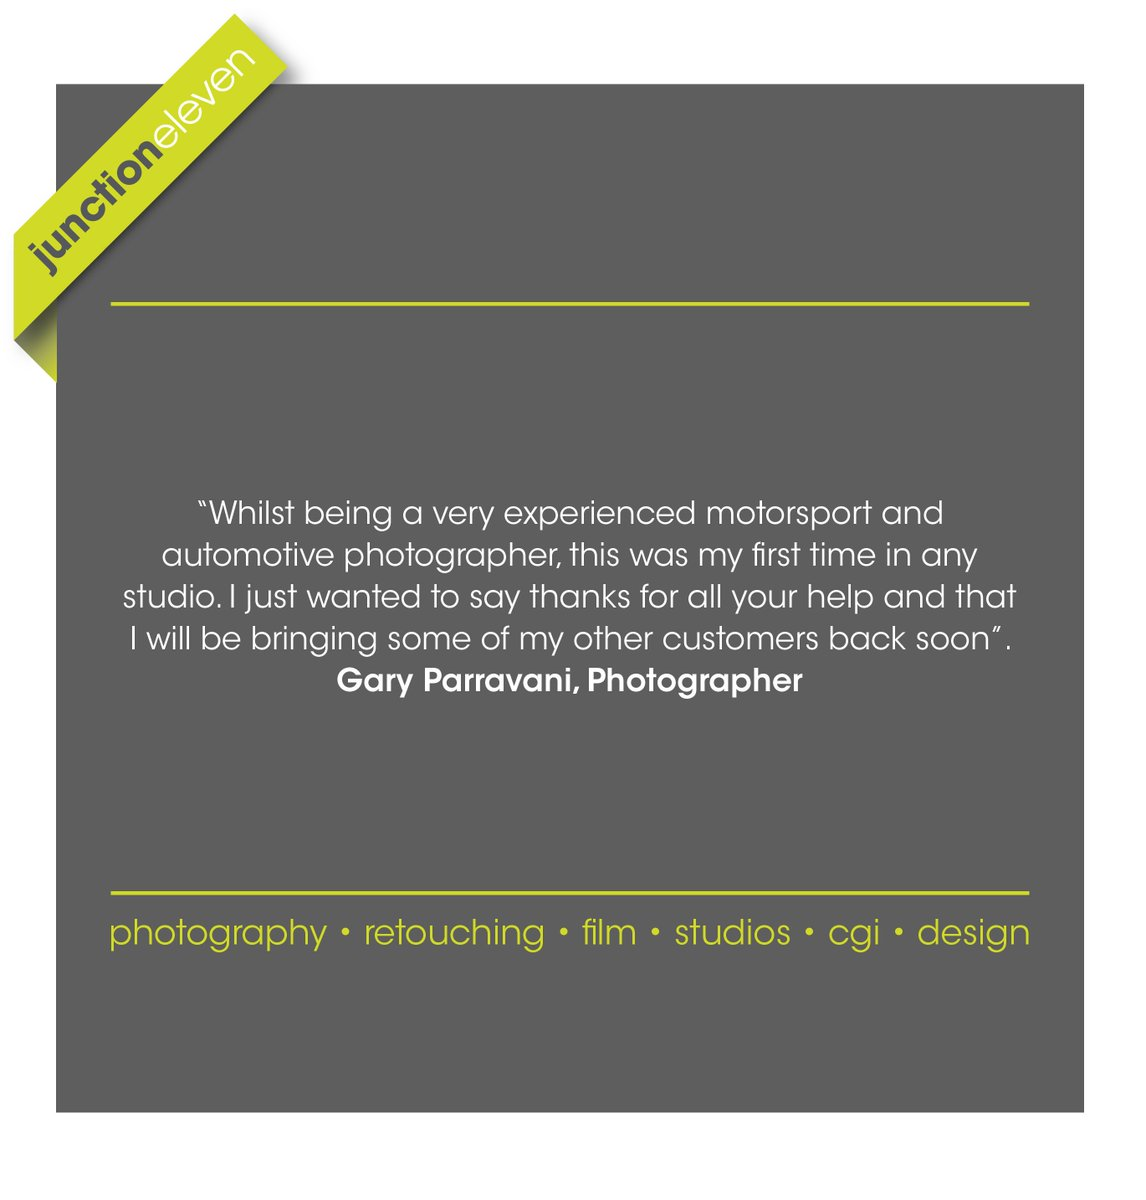 It really makes our day when we receive great feedback from a client!  #testimonialtuesdays #clientfeedback #studiohire #automotivestudio #carstudio #ukstudio #photographystudio #wehire